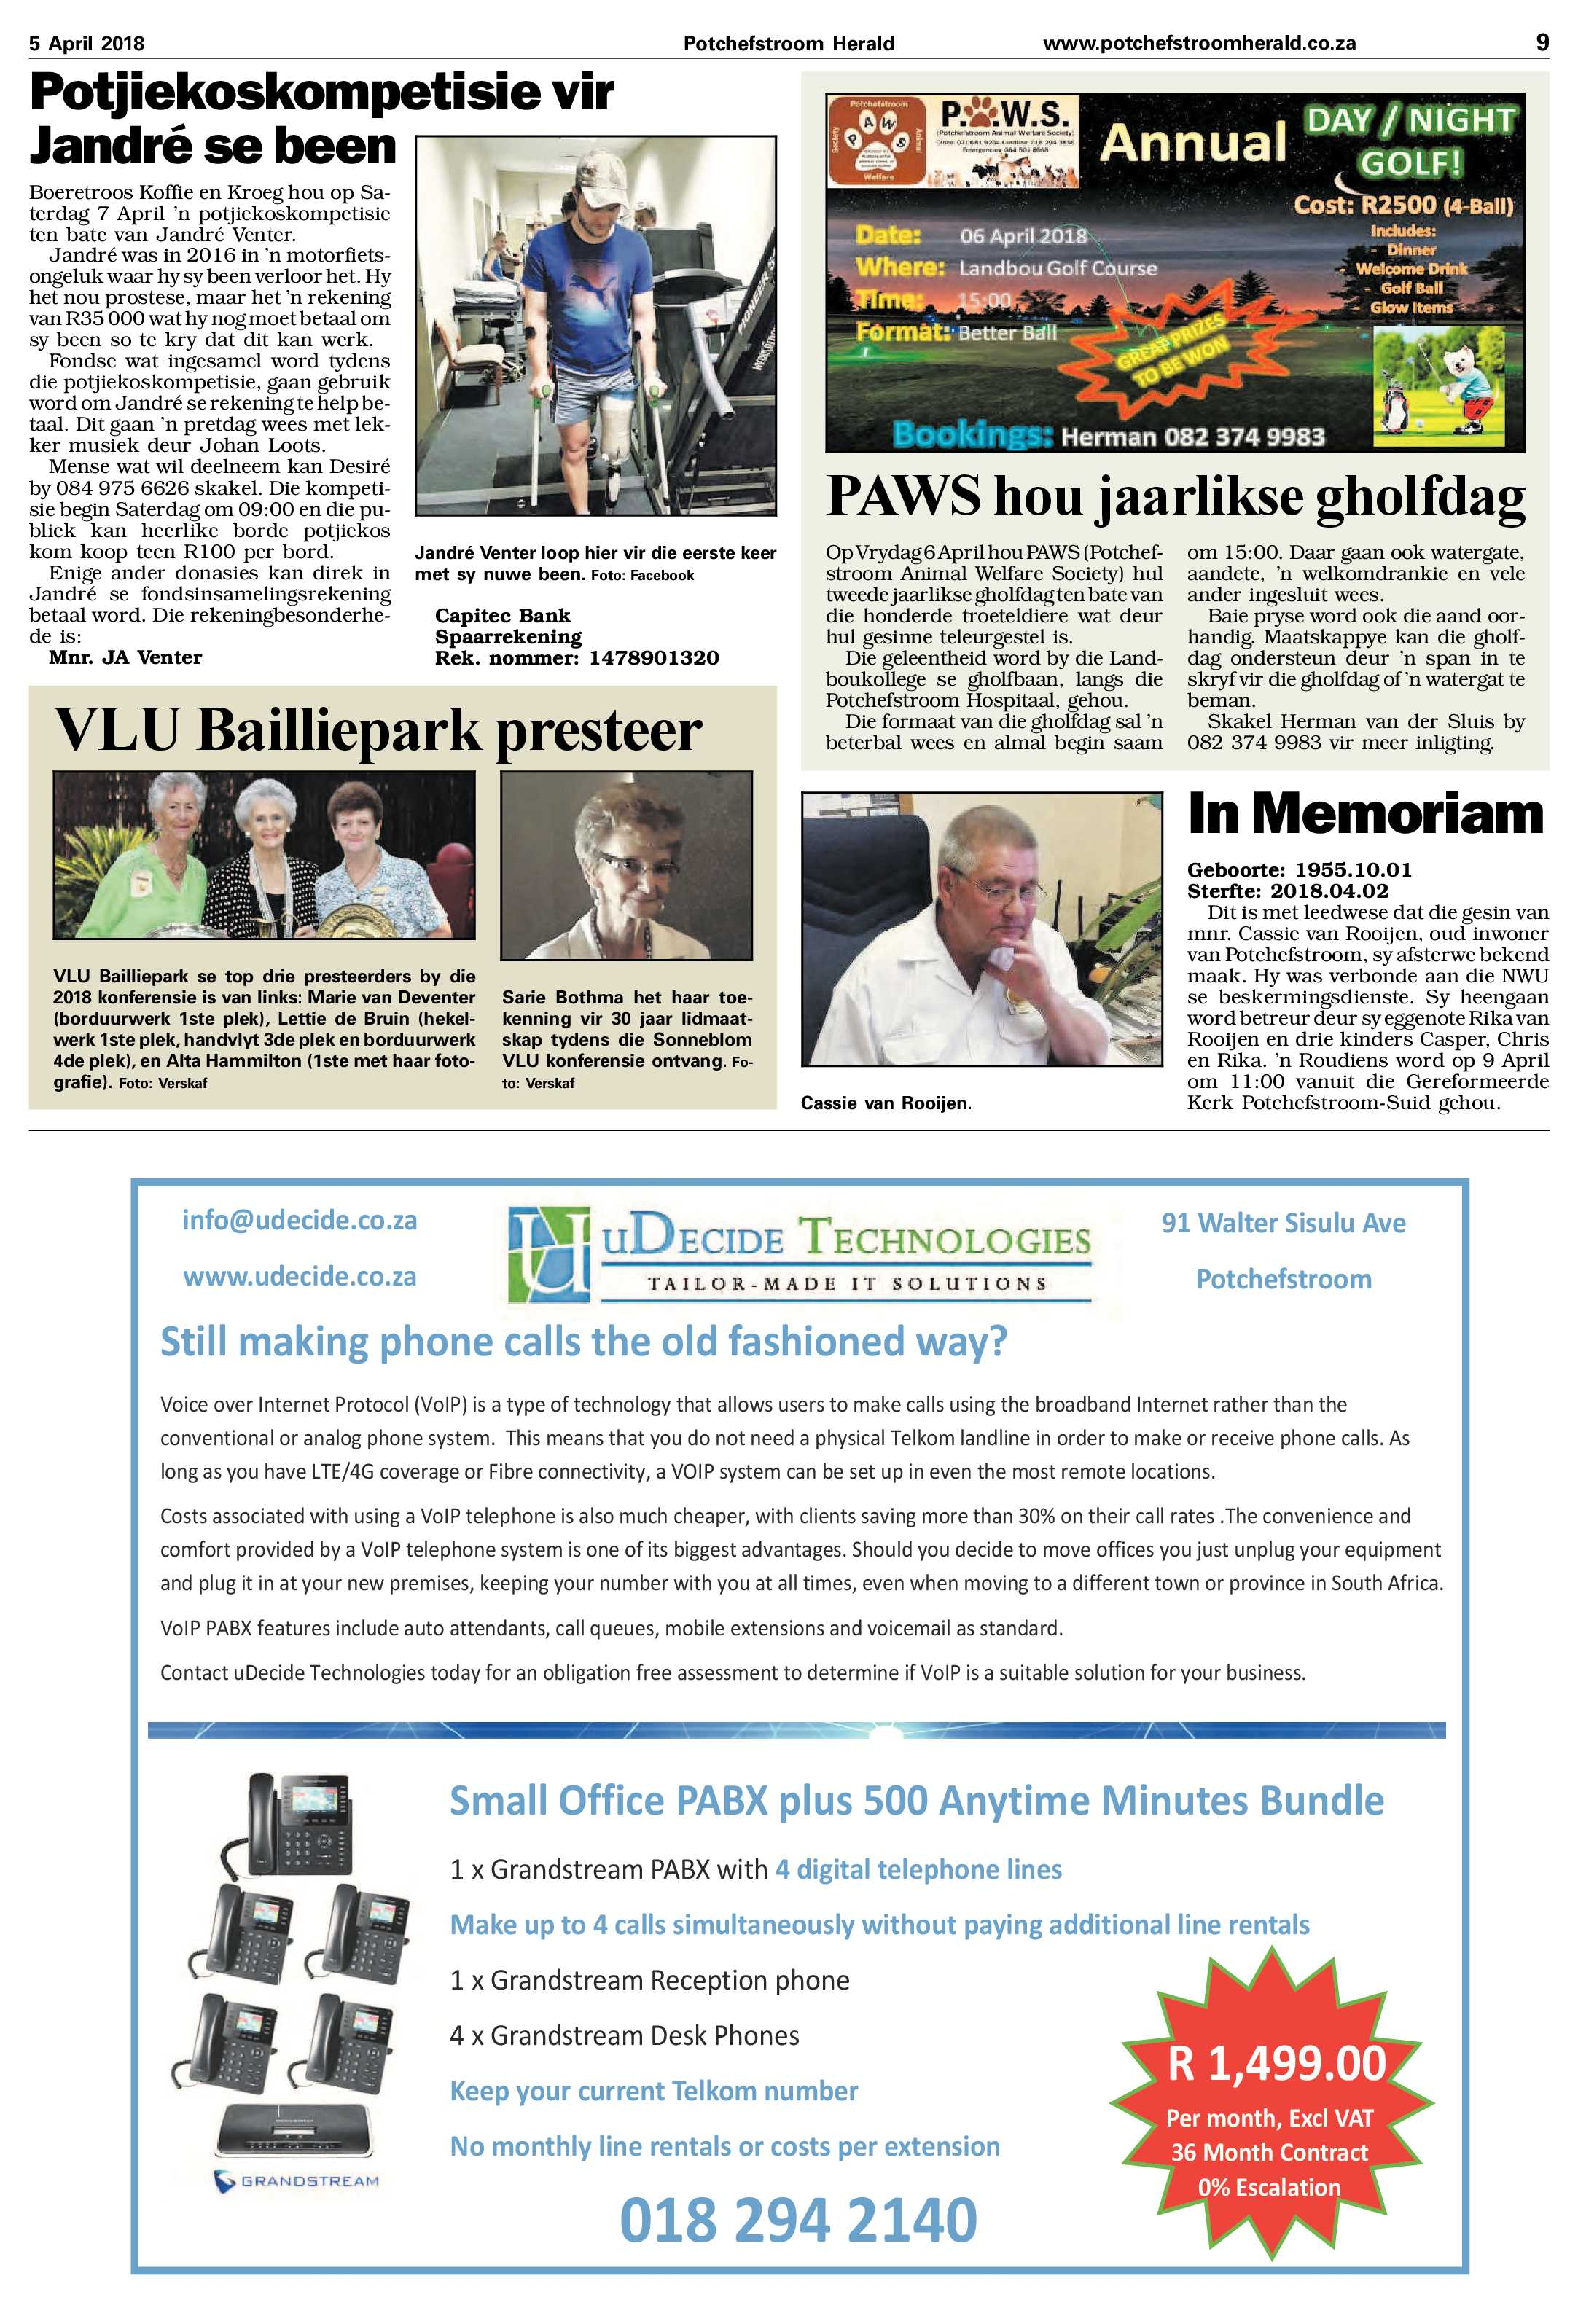 5-april-2018-epapers-page-9